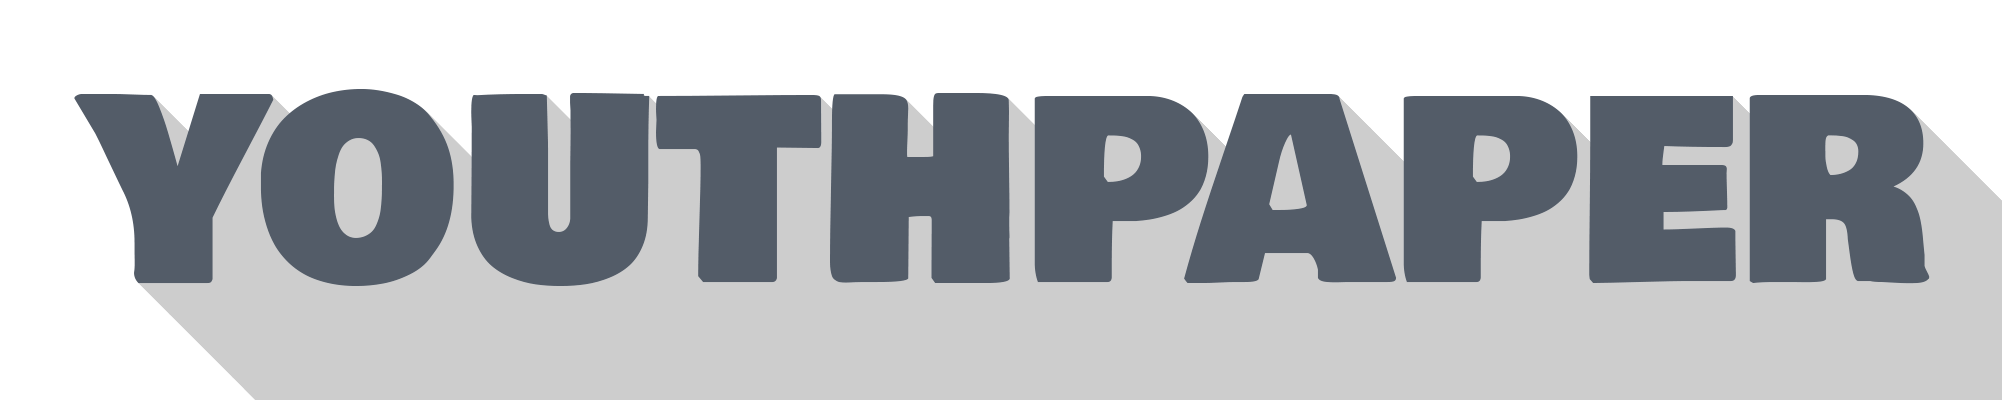 youthpaper